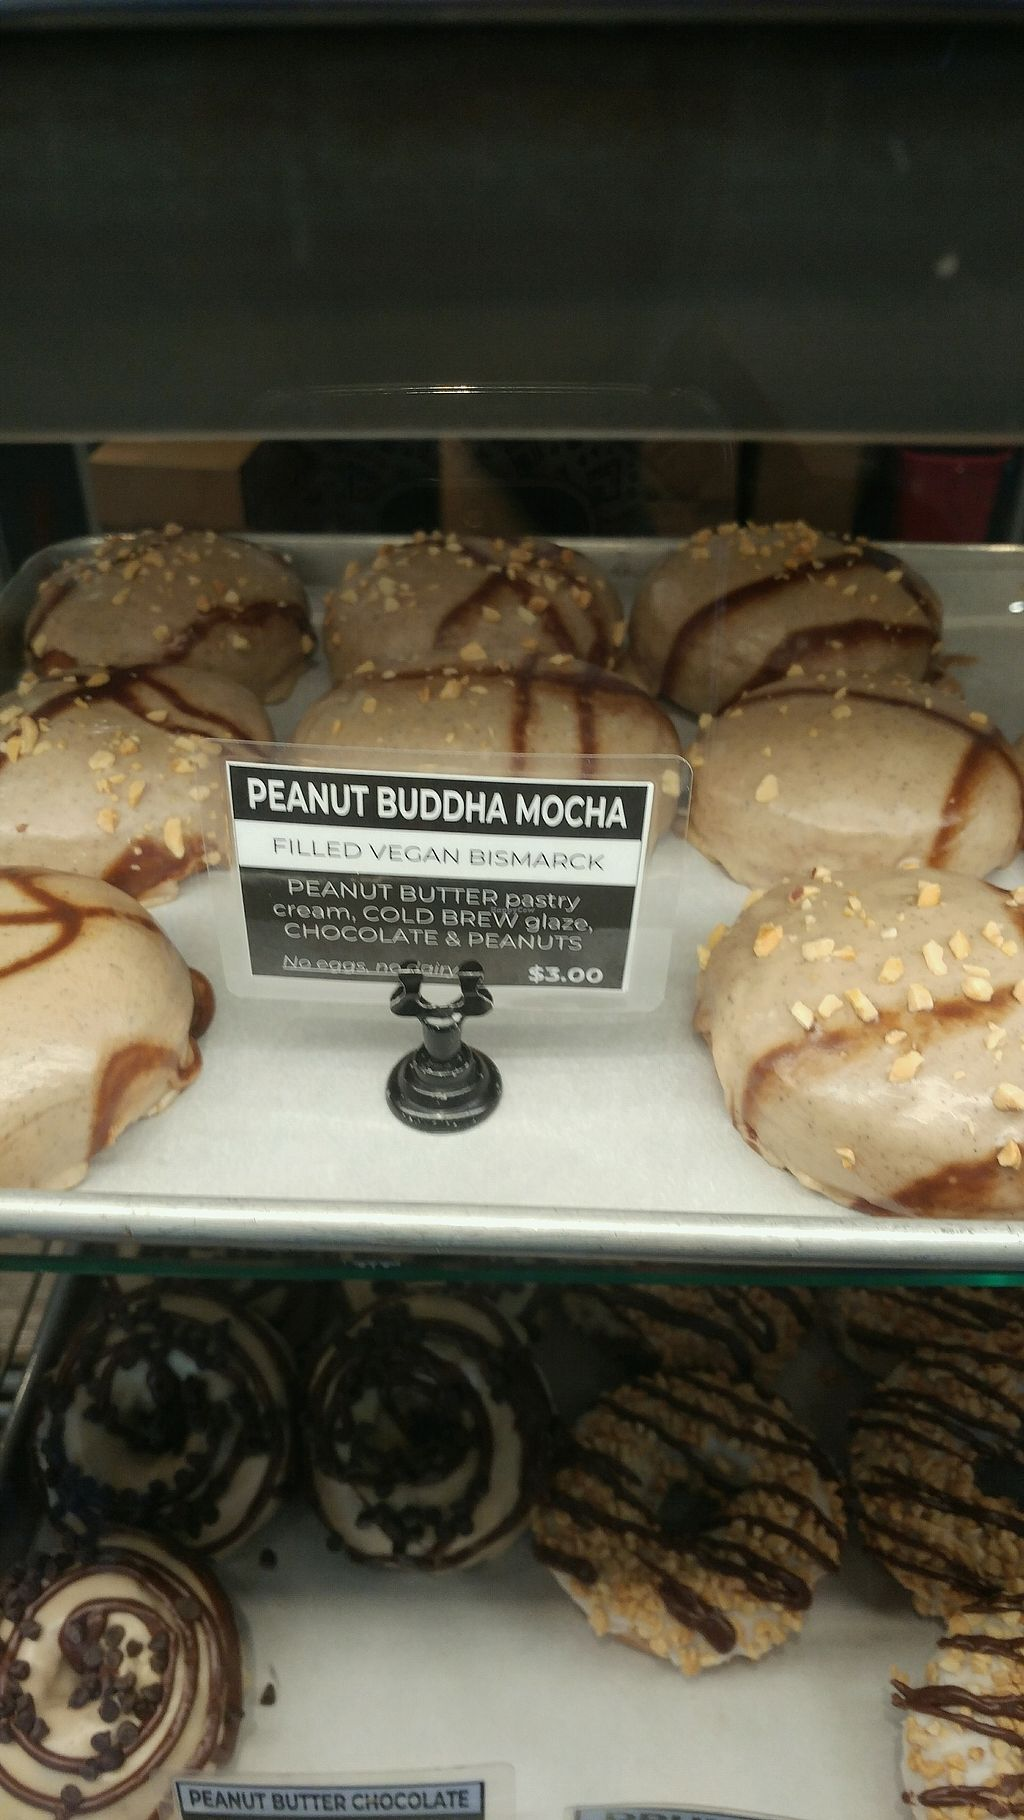 "Photo of Guru Donuts  by <a href=""/members/profile/krimaro"">krimaro</a> <br/>Peanut Buddah Mocha  <br/> April 8, 2018  - <a href='/contact/abuse/image/58232/382362'>Report</a>"